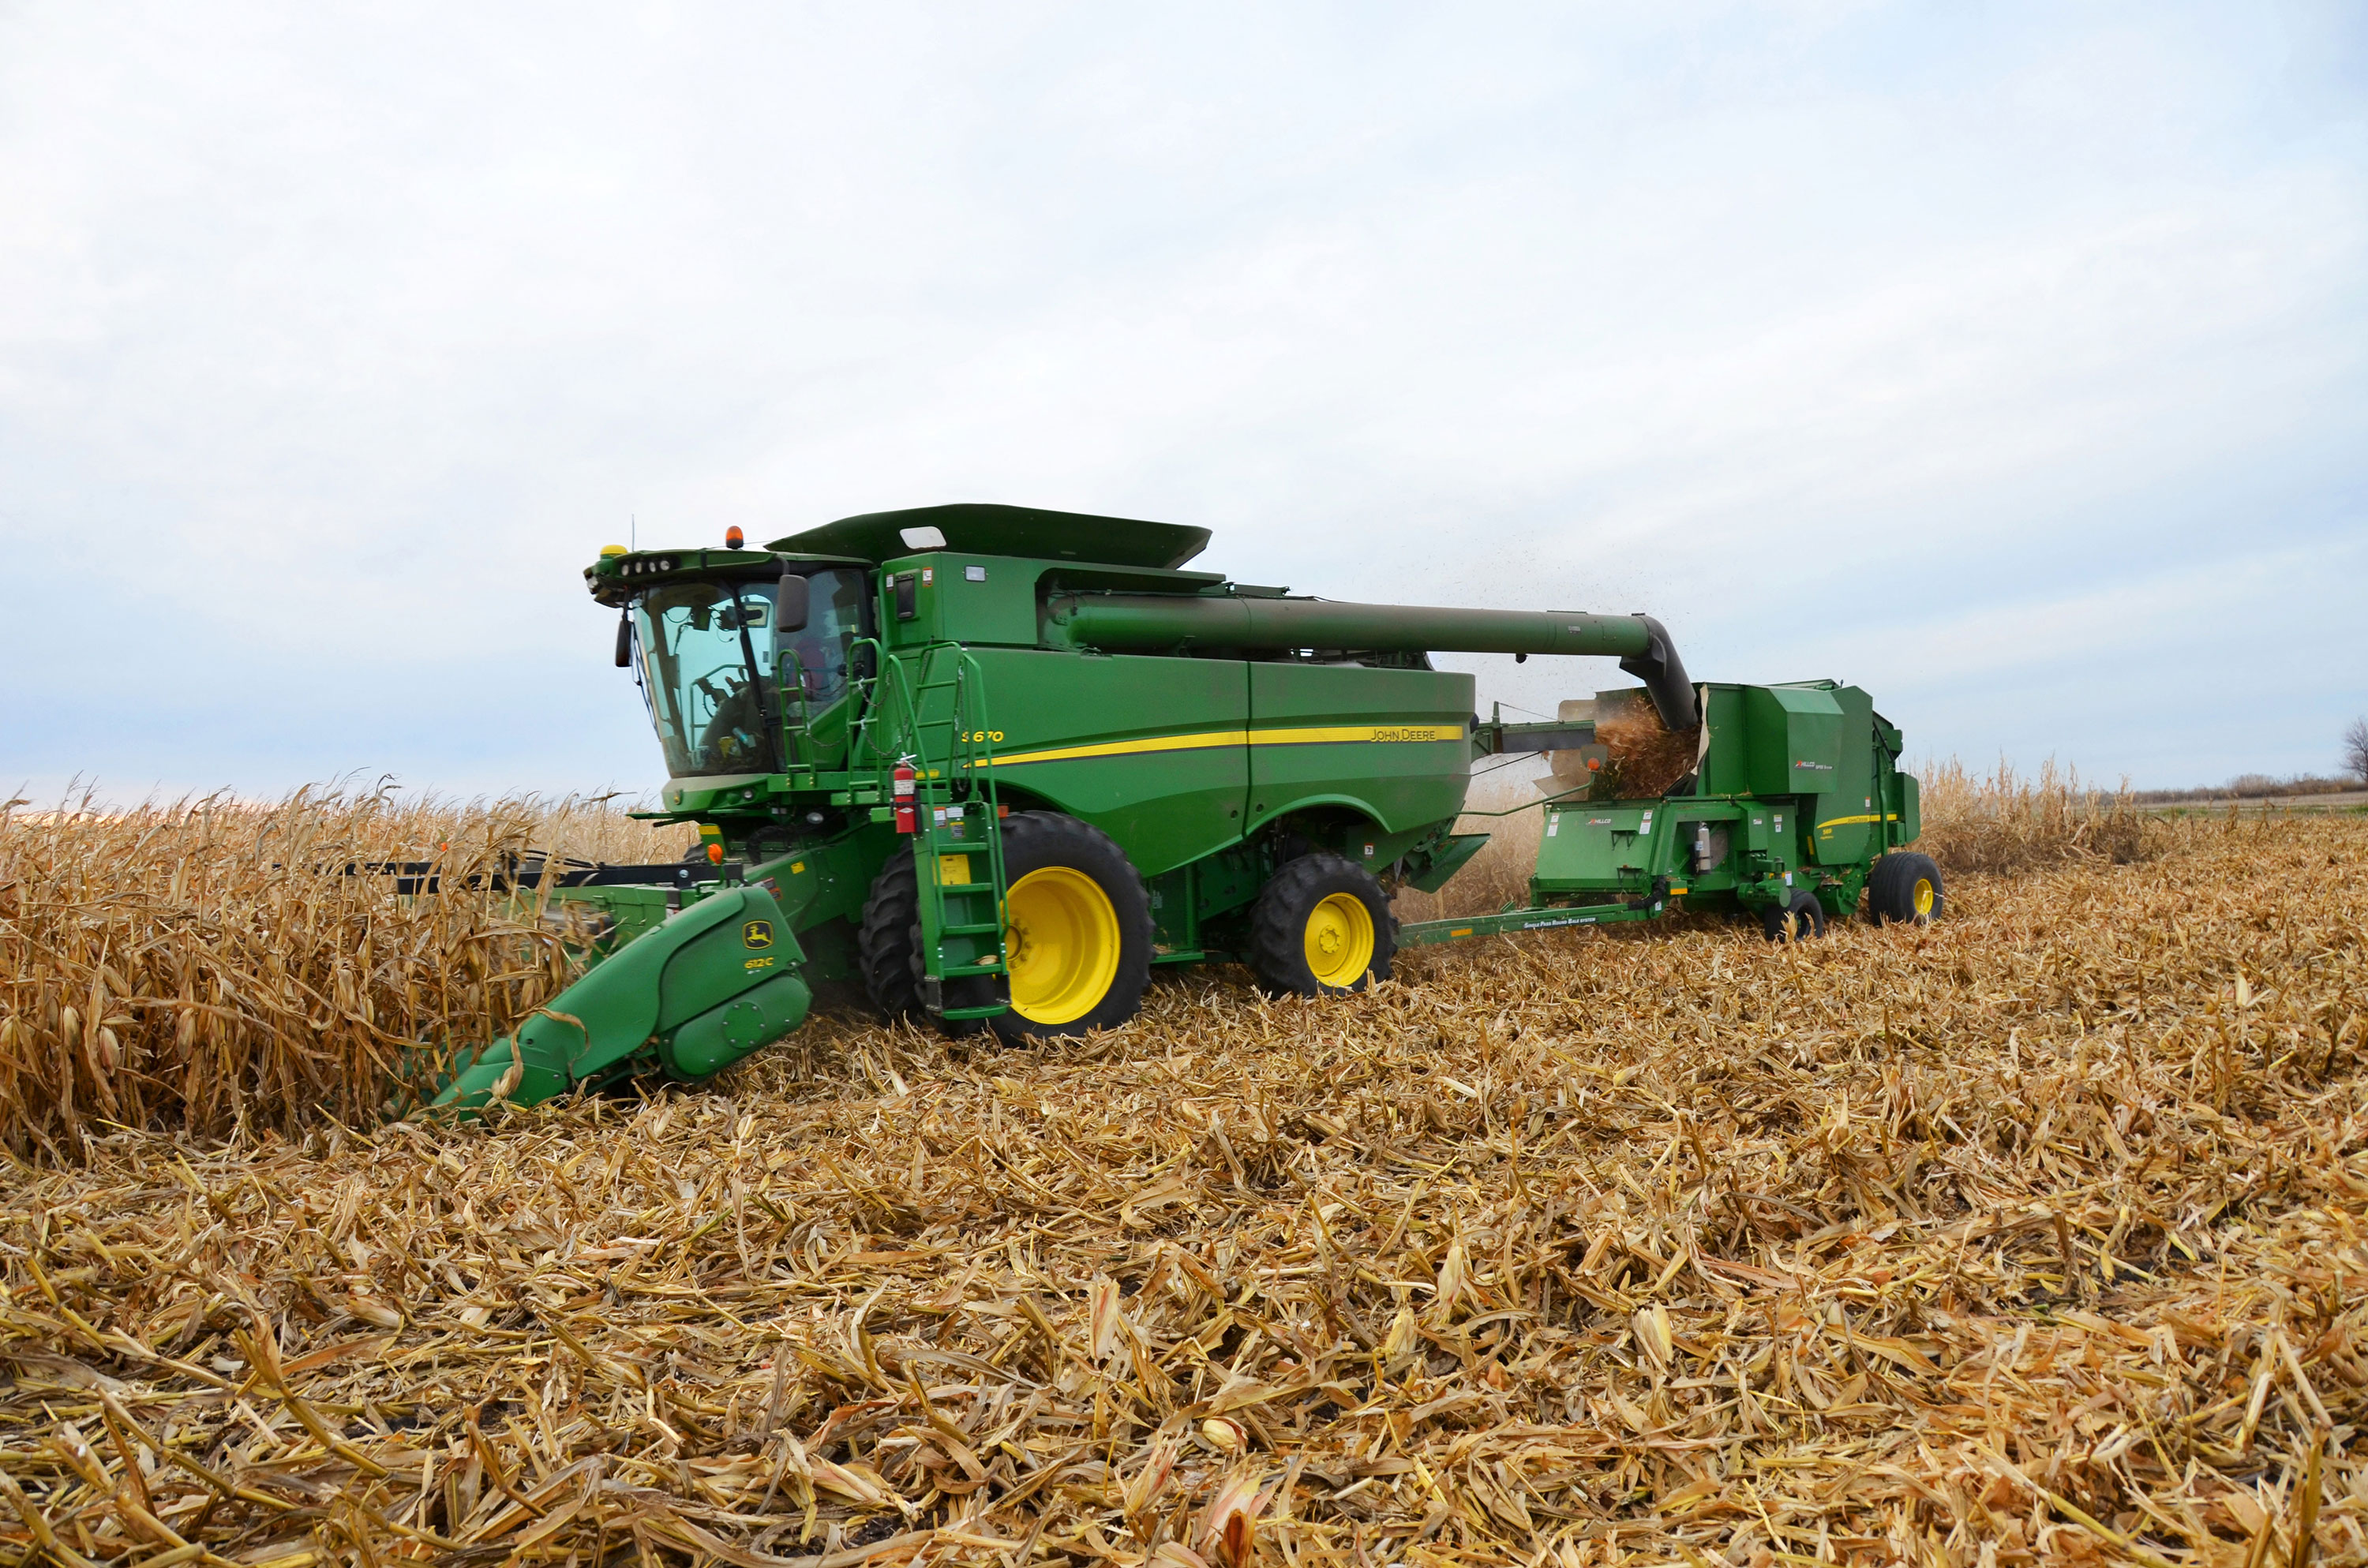 Image Gallery: Sizing up the 2015 Lineup of New John Deere ...